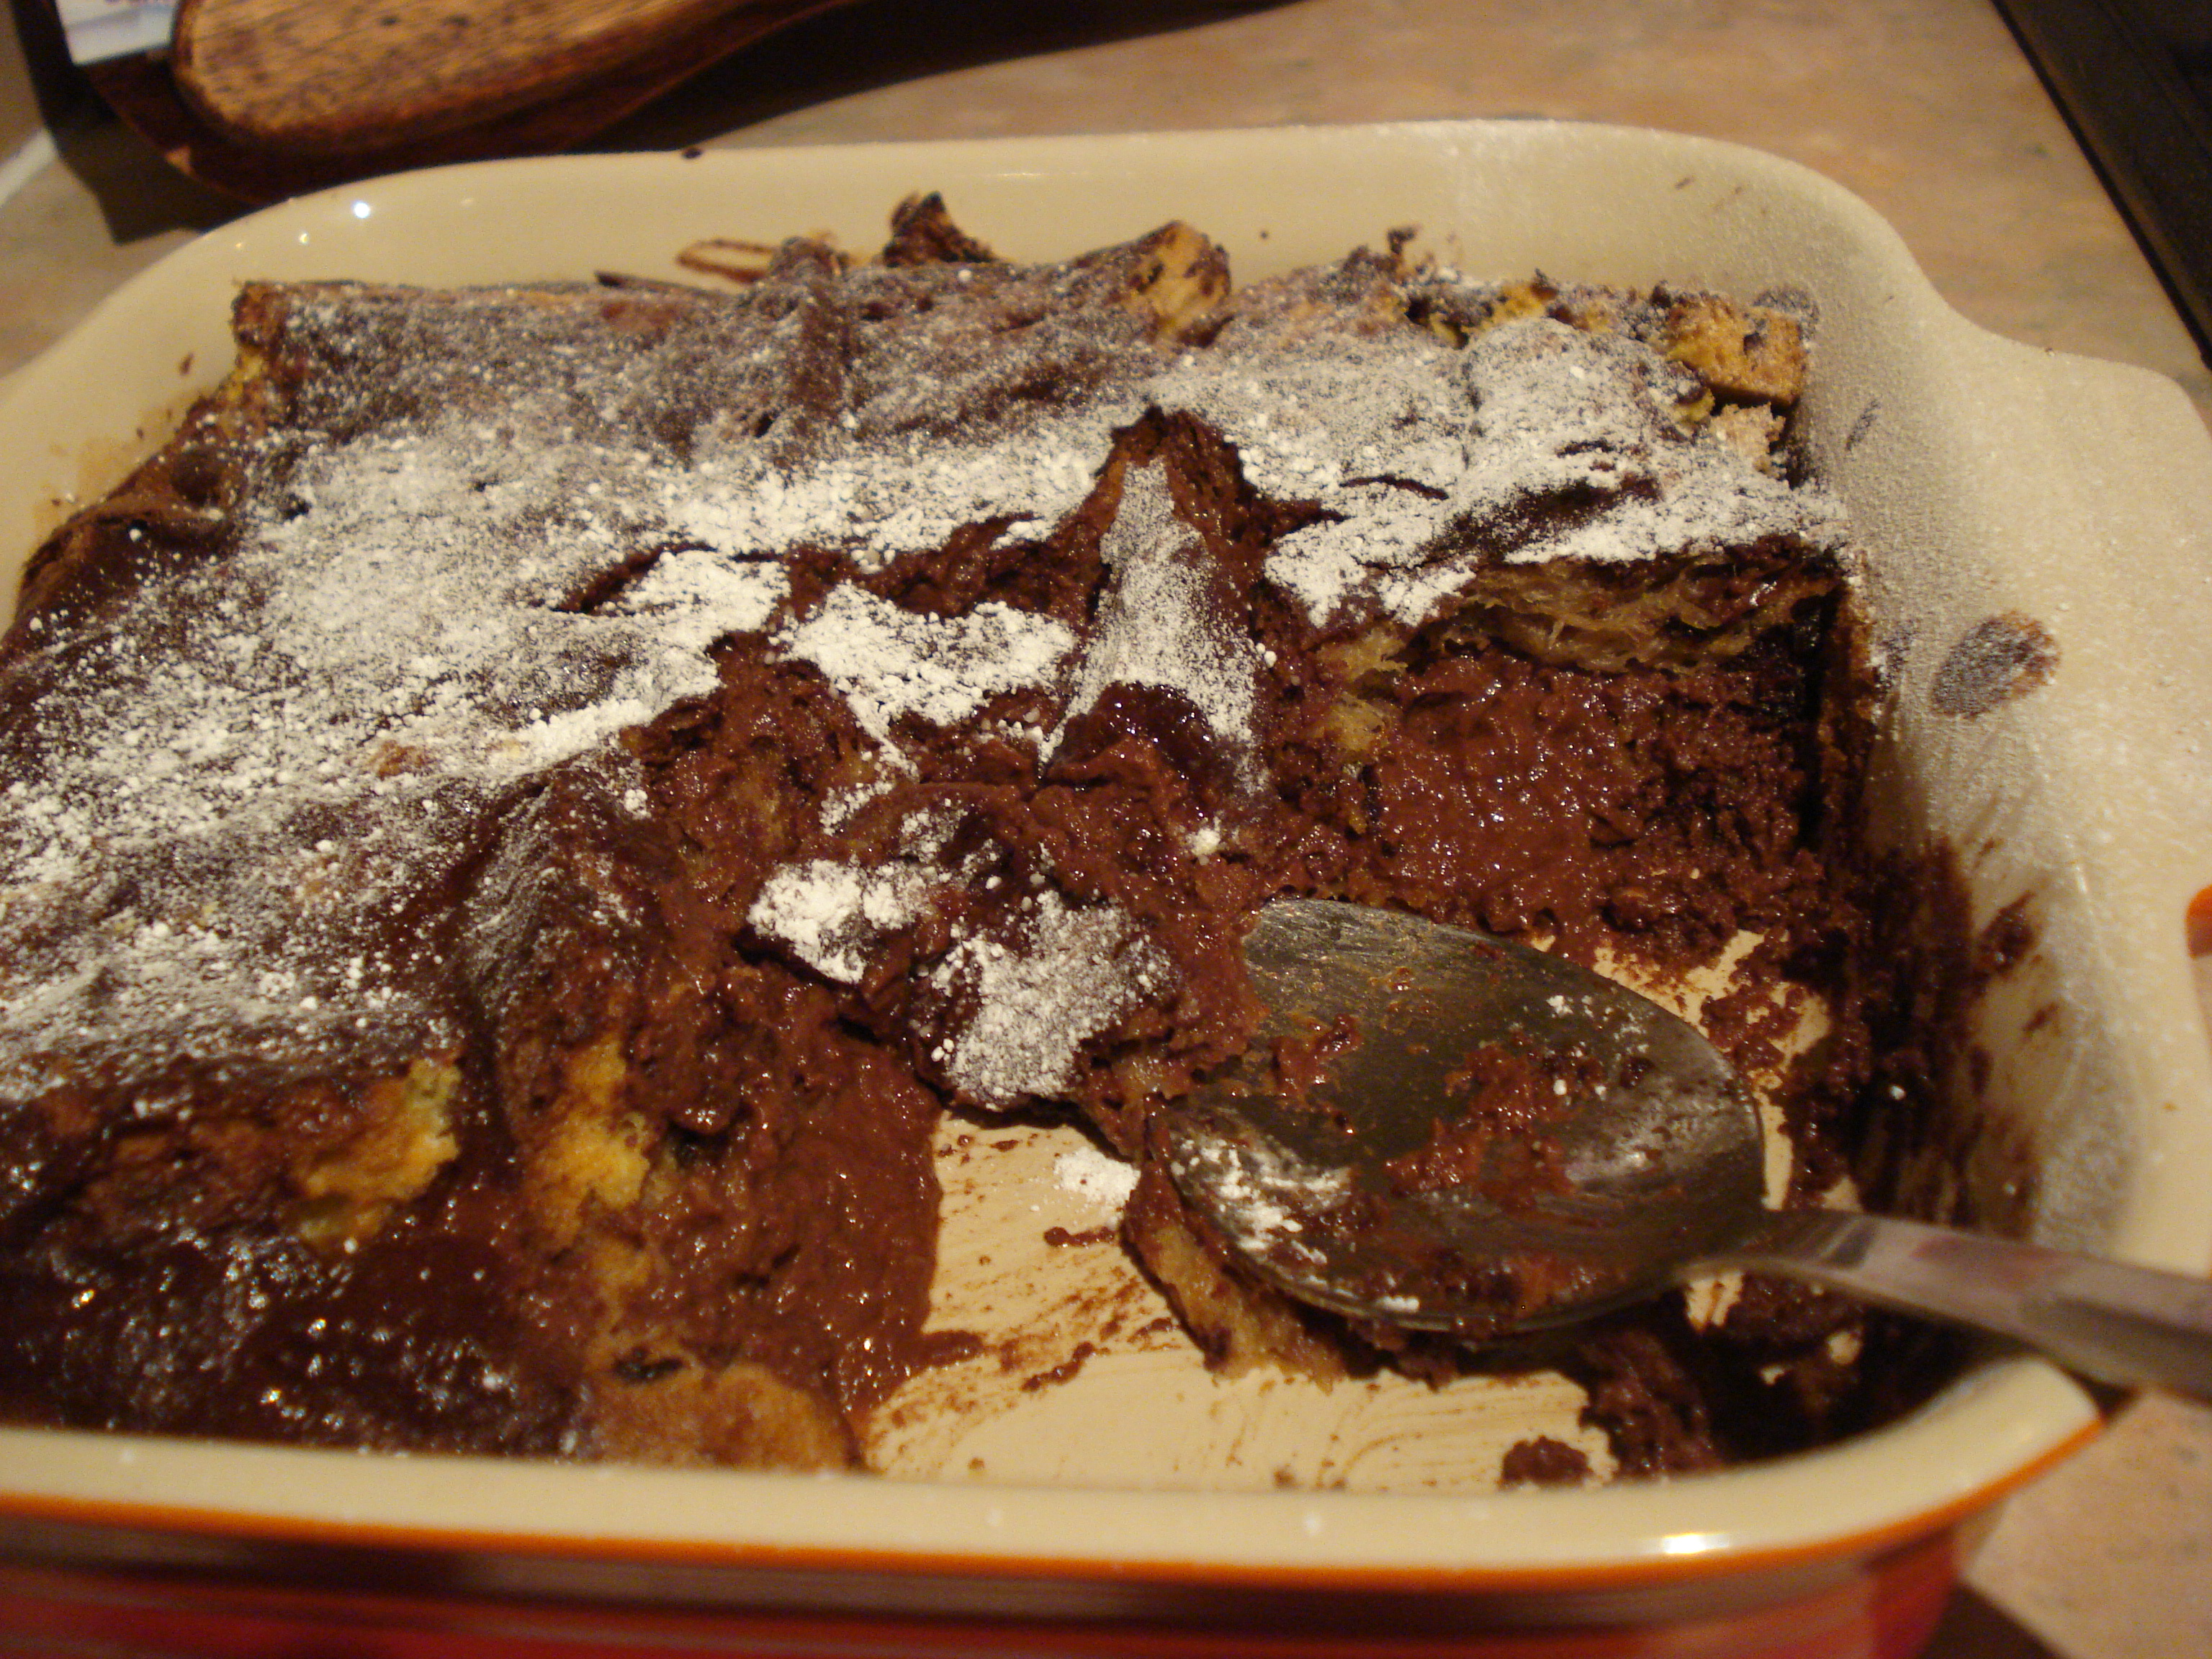 Black forest bread pudding: